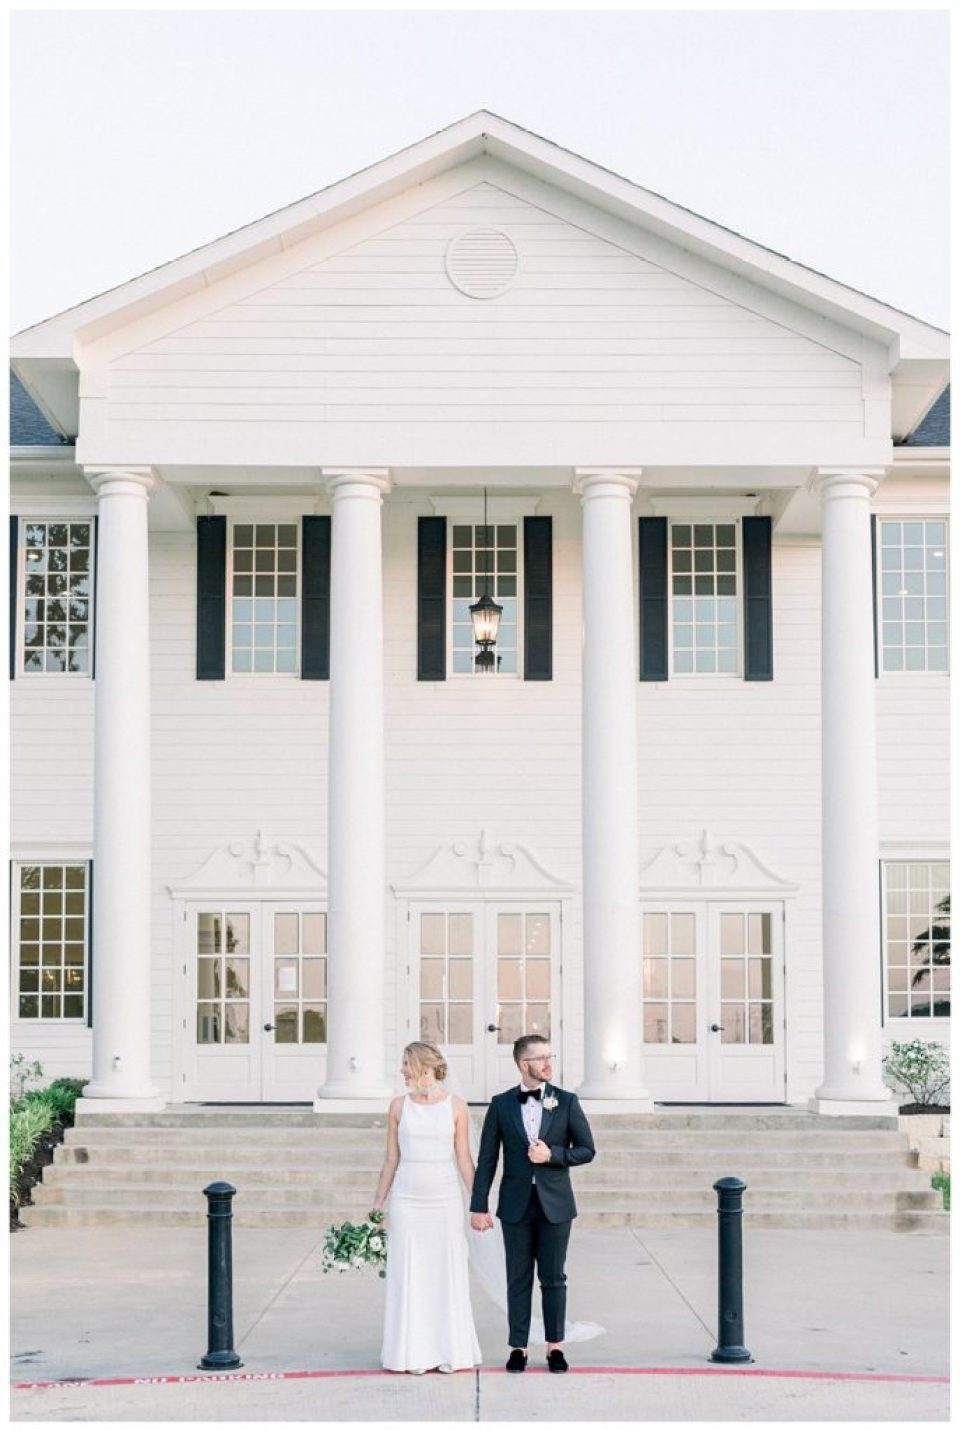 Bride and groom standing looking off in front of The Milestone Mansion wedding Aubrey Texas